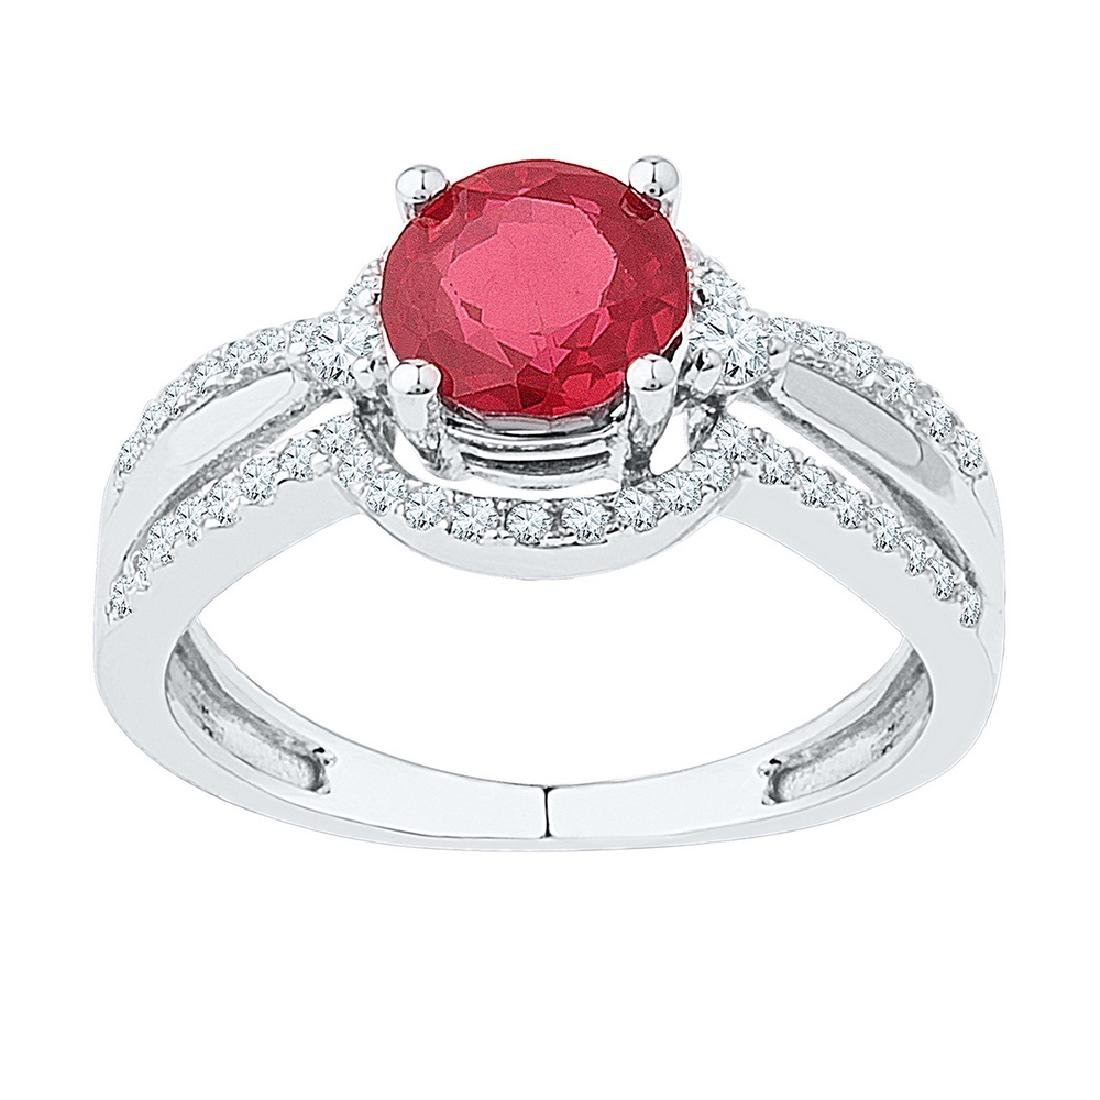 2.08 CTW Created Ruby Solitaire Ring 10KT White Gold -